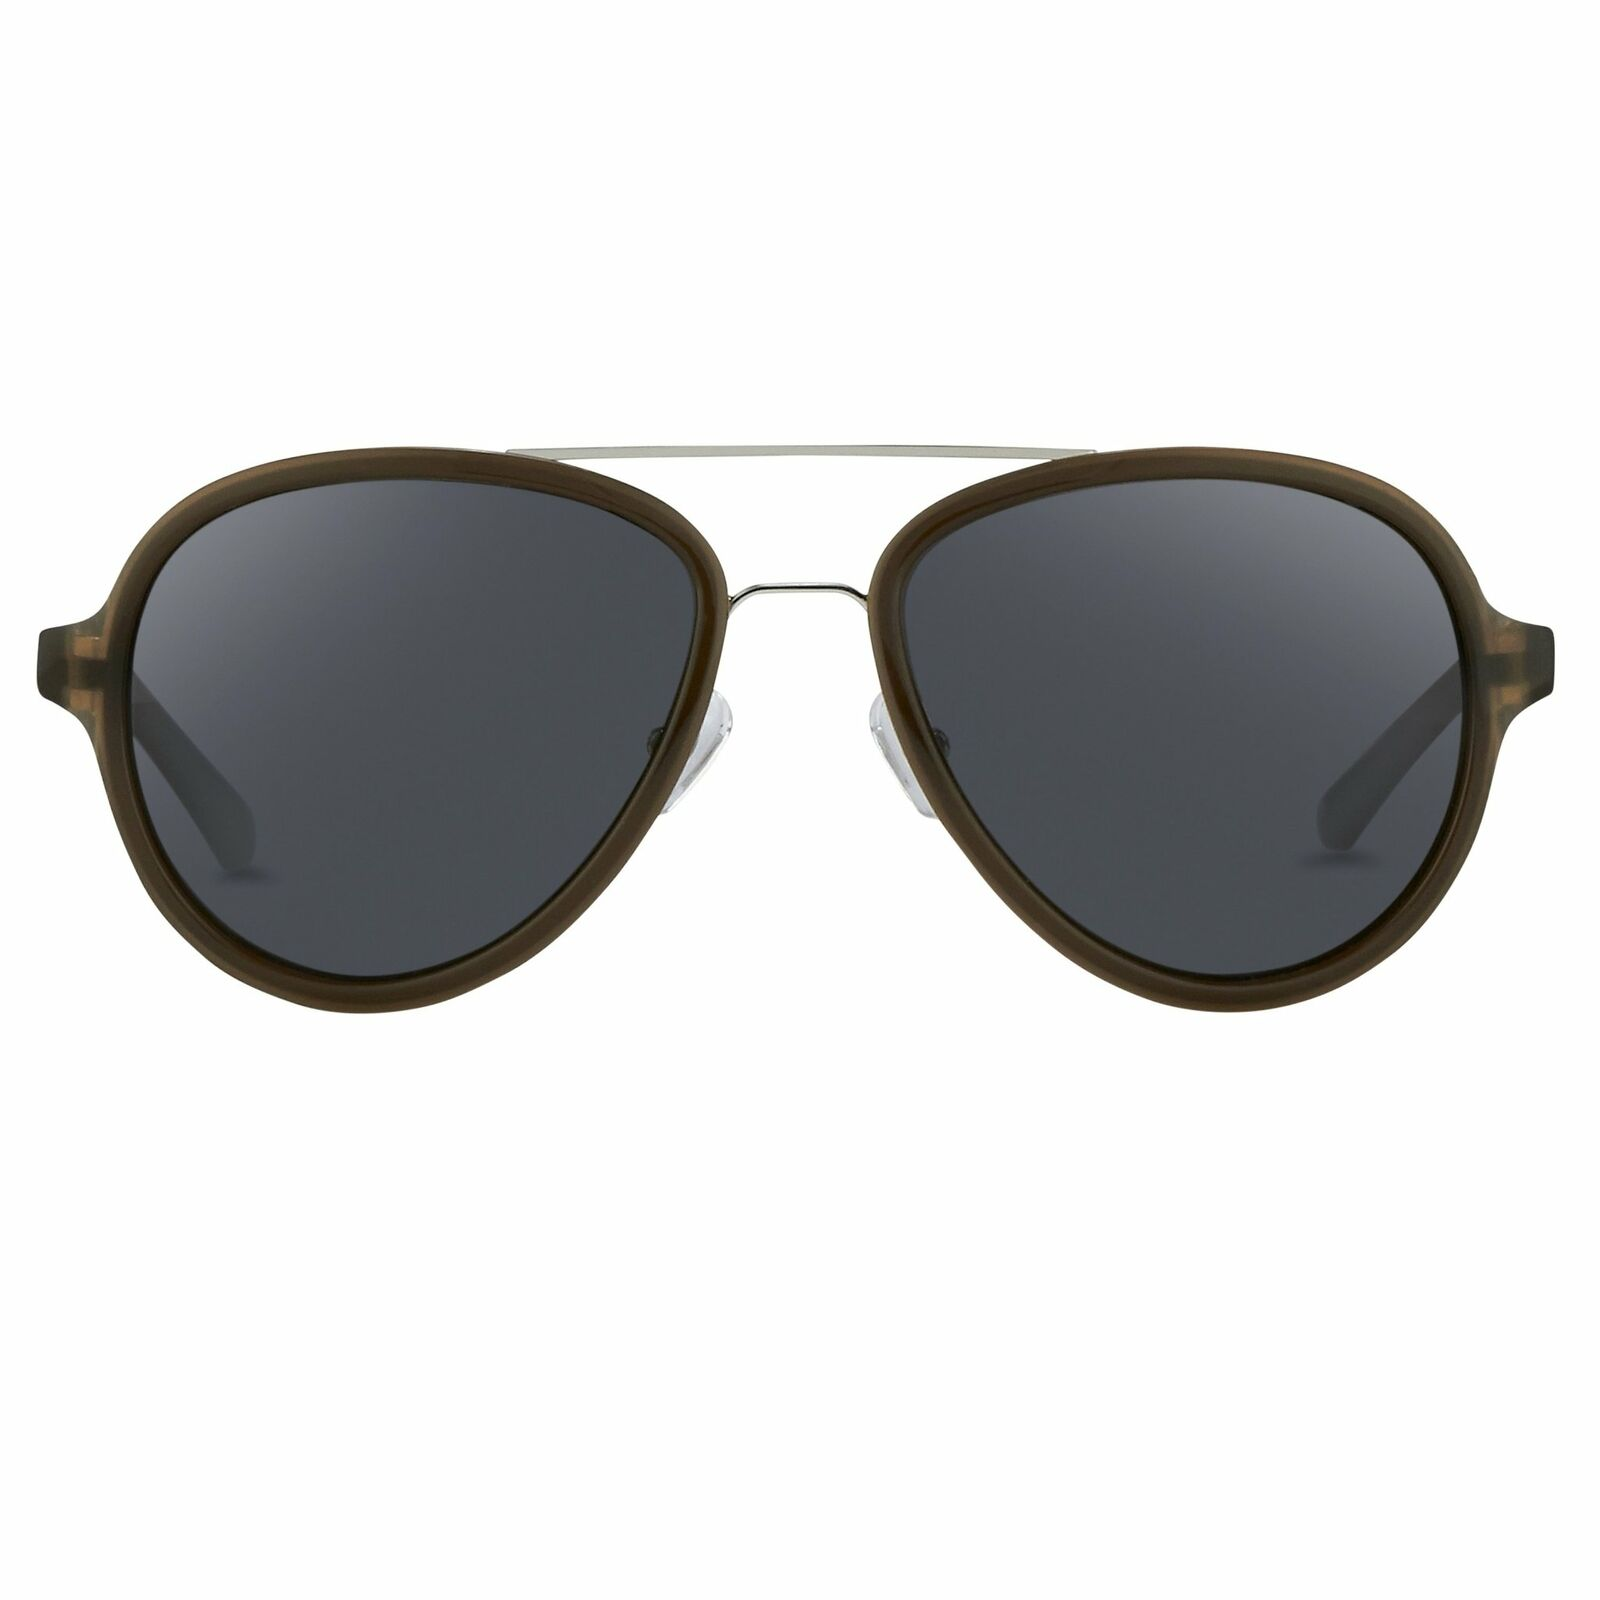 Phillip Lim Sunglasses Brown and Fog Green